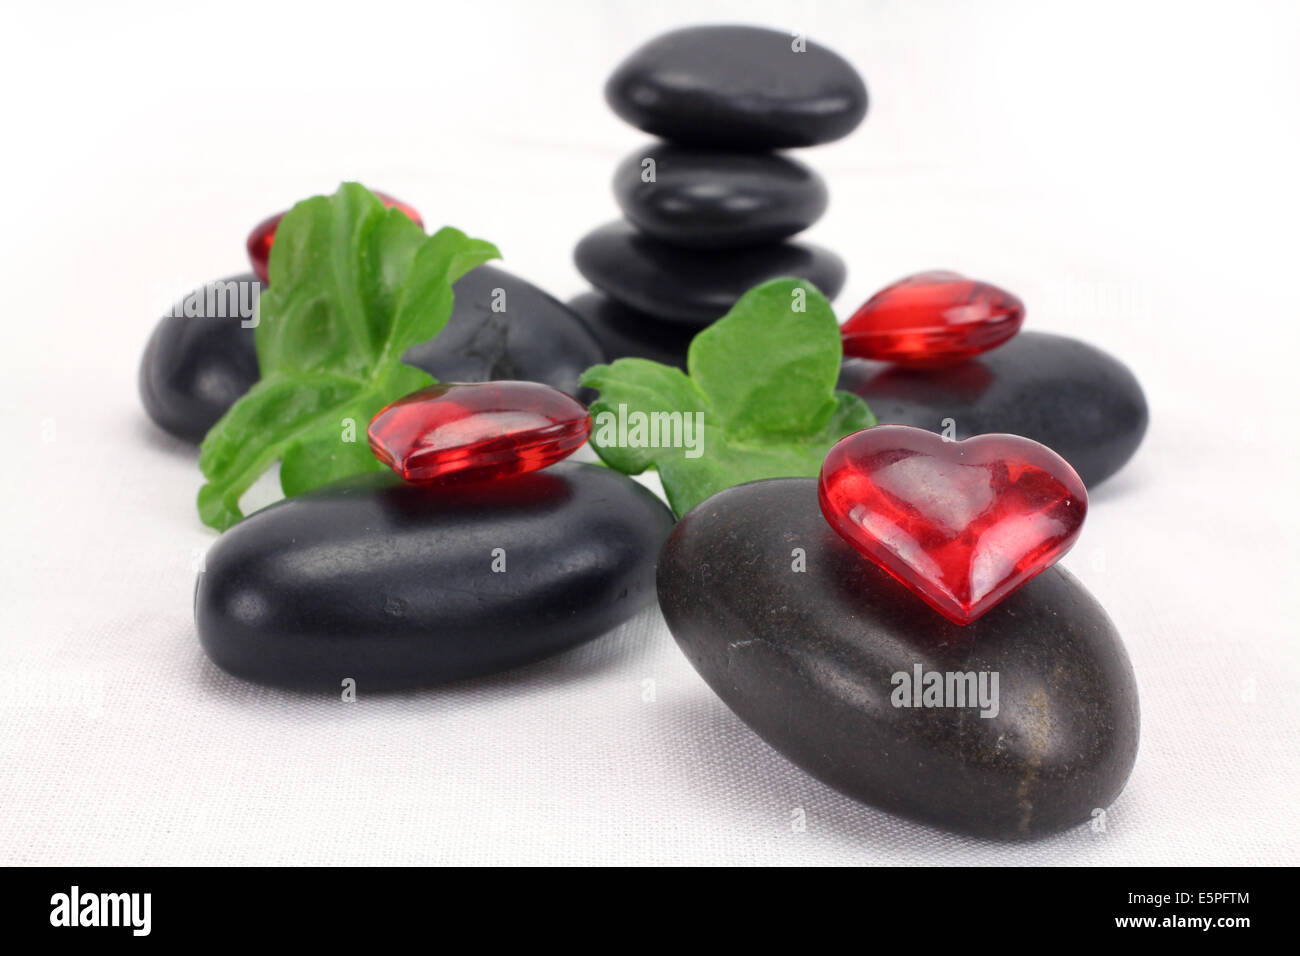 A pile of balanced black spa therapy stones - Stock Image